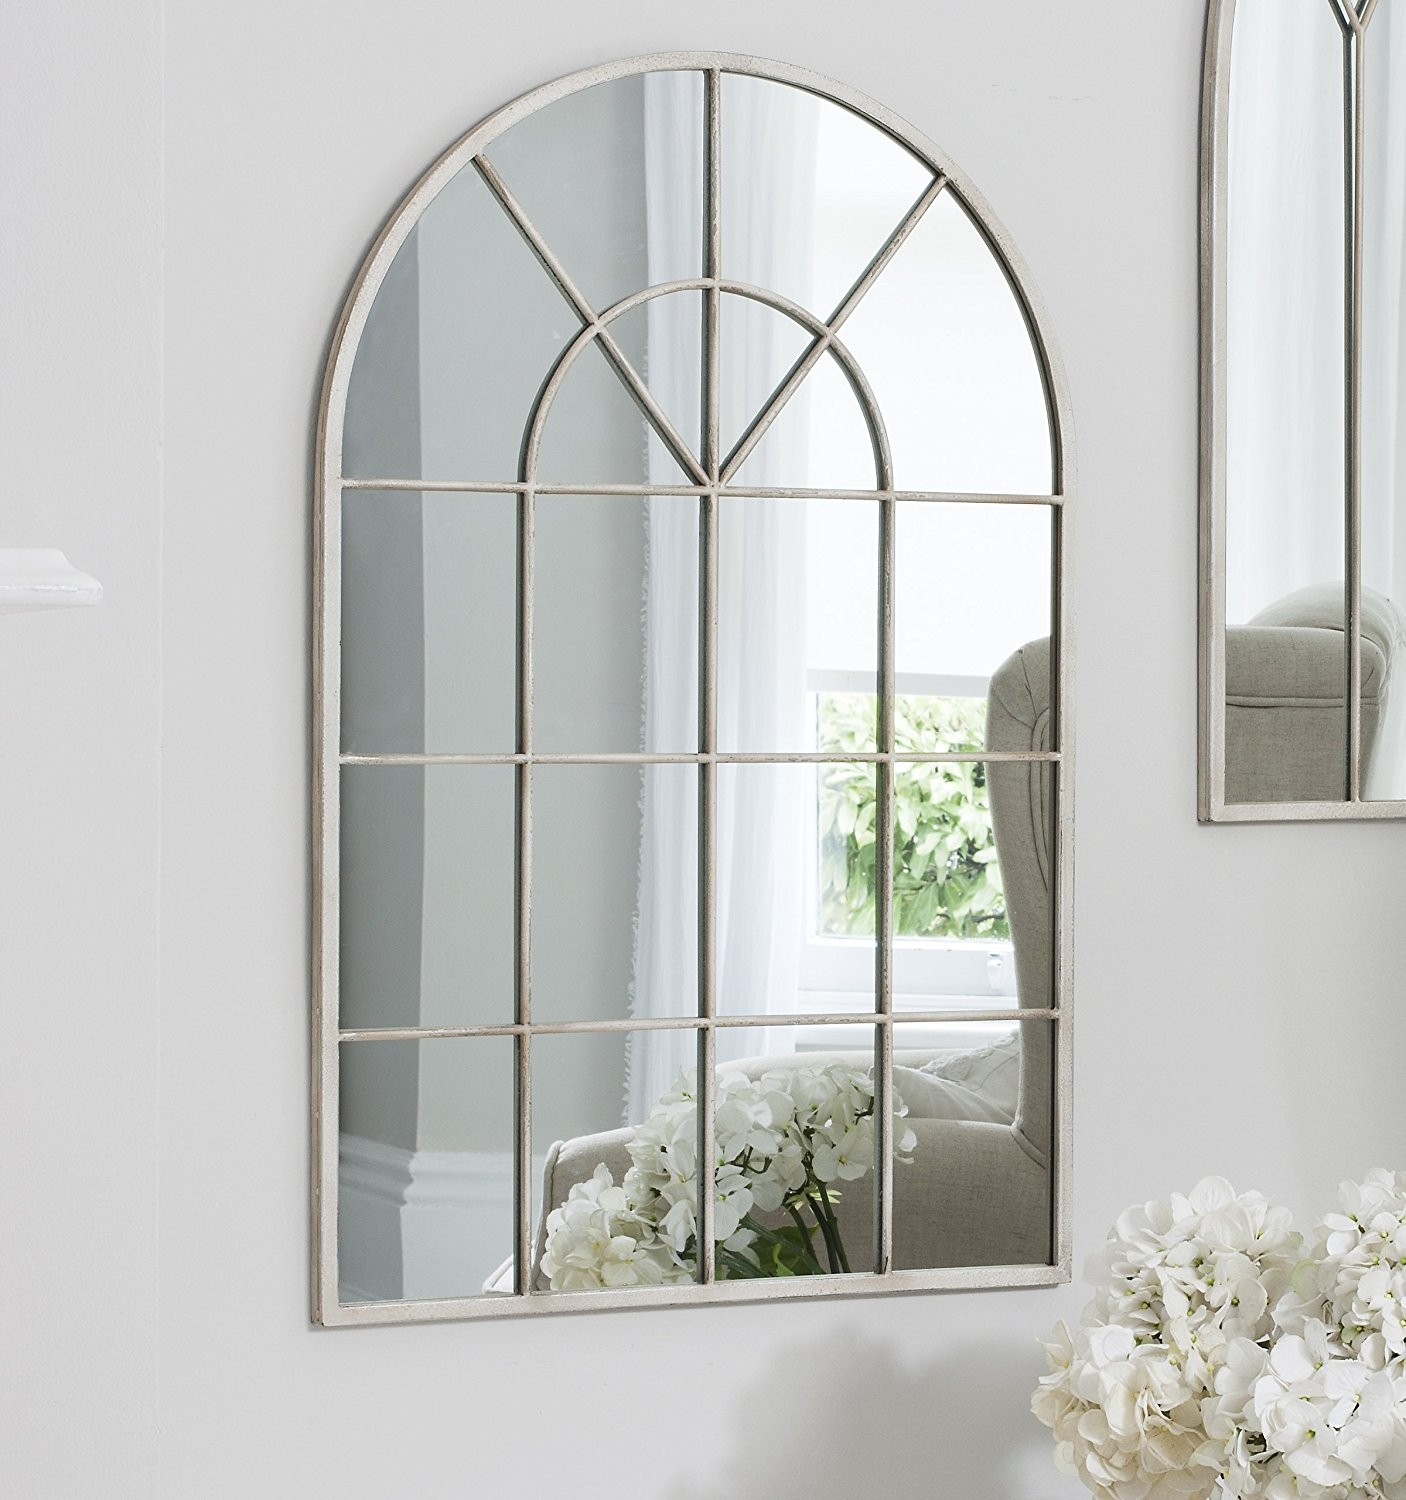 Curtis Large Shab Chic Vintage Arched Long Wall Floor Window Throughout Long Vintage Mirror (Image 5 of 15)